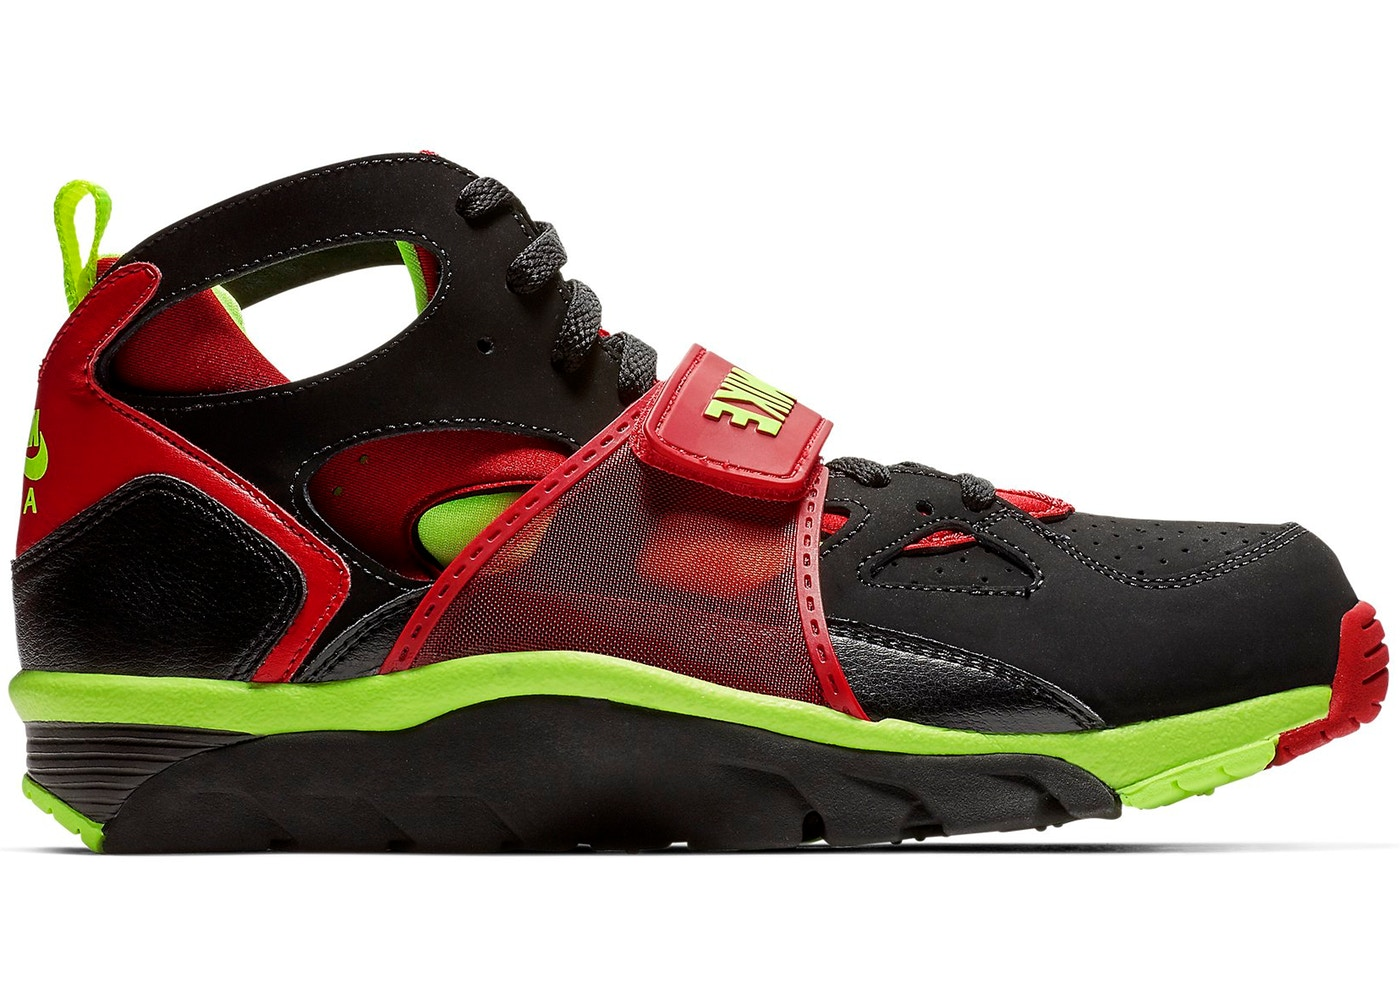 5be504437aaa Air Trainer Huarache Black Volt University Red - 679083-020